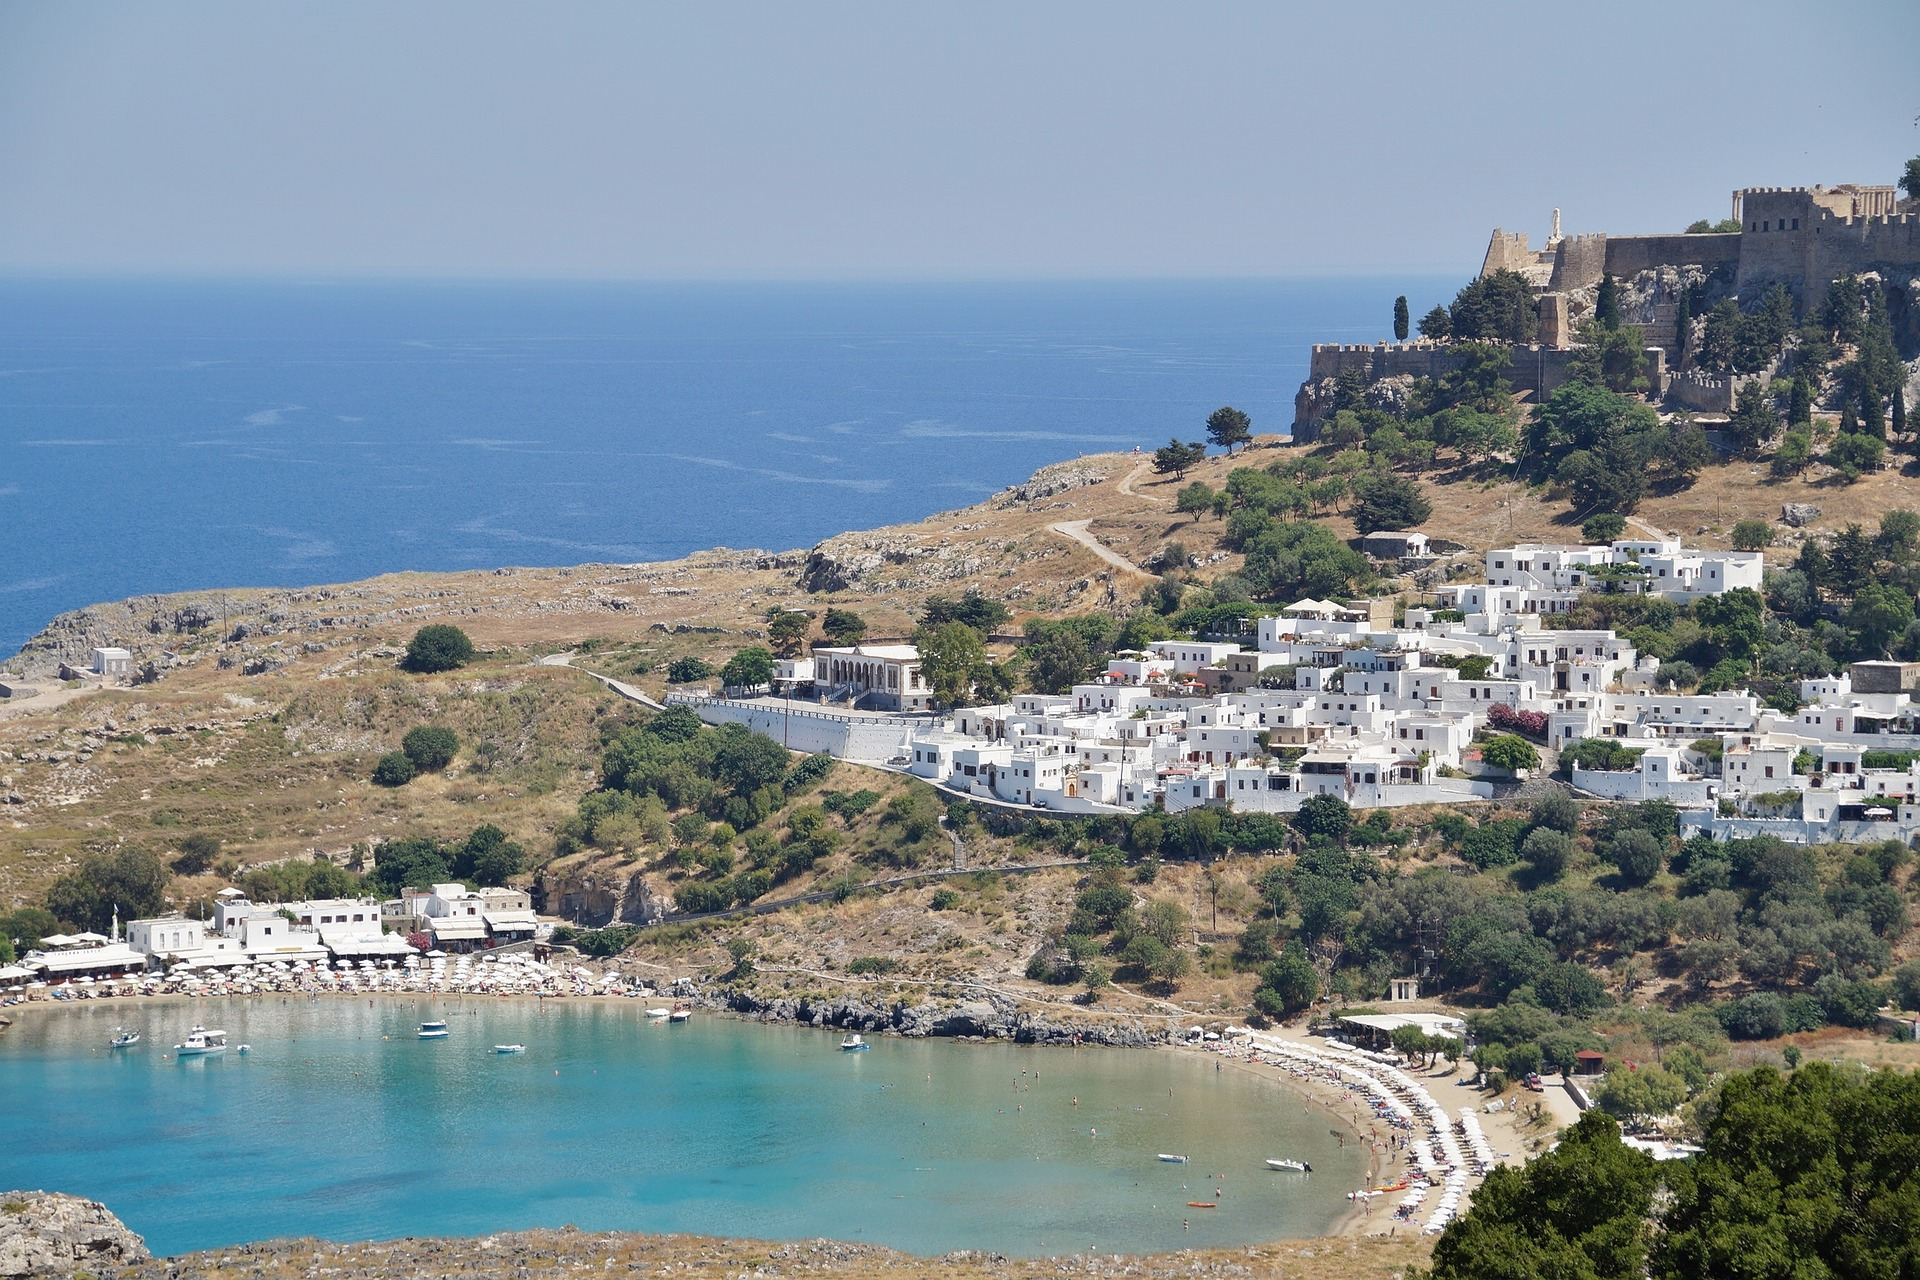 St. Paul's Bay on the Island of Rhodes